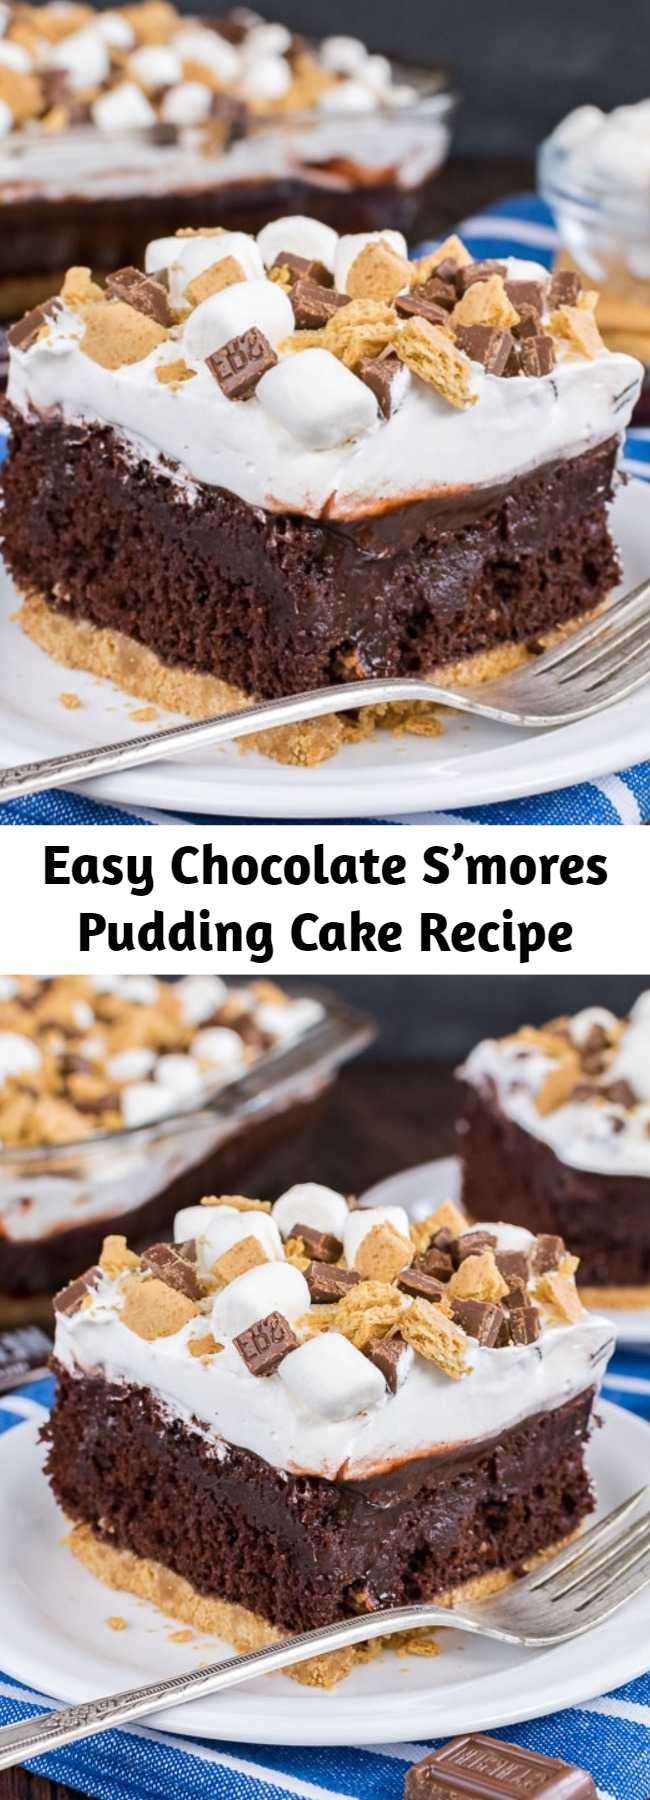 Easy Chocolate S'mores Pudding Cake Recipe - A graham cracker crust, chocolate pudding, and a marshmallow topping make this Chocolate S'mores Pudding Cake the perfect summer dessert.